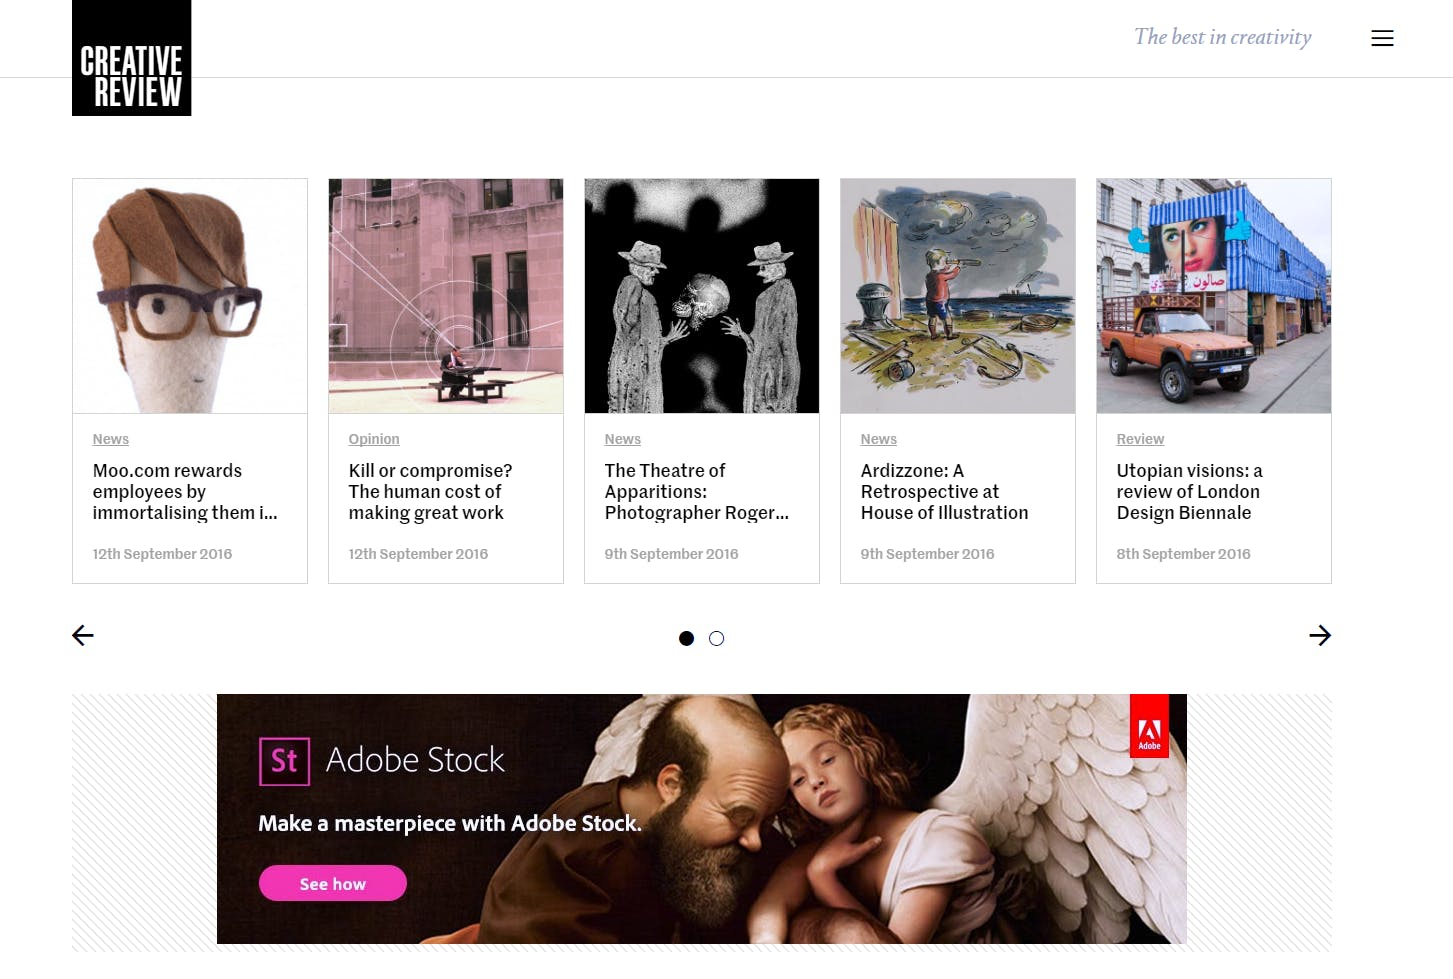 A screenshot of the home page of the Creative Review website.